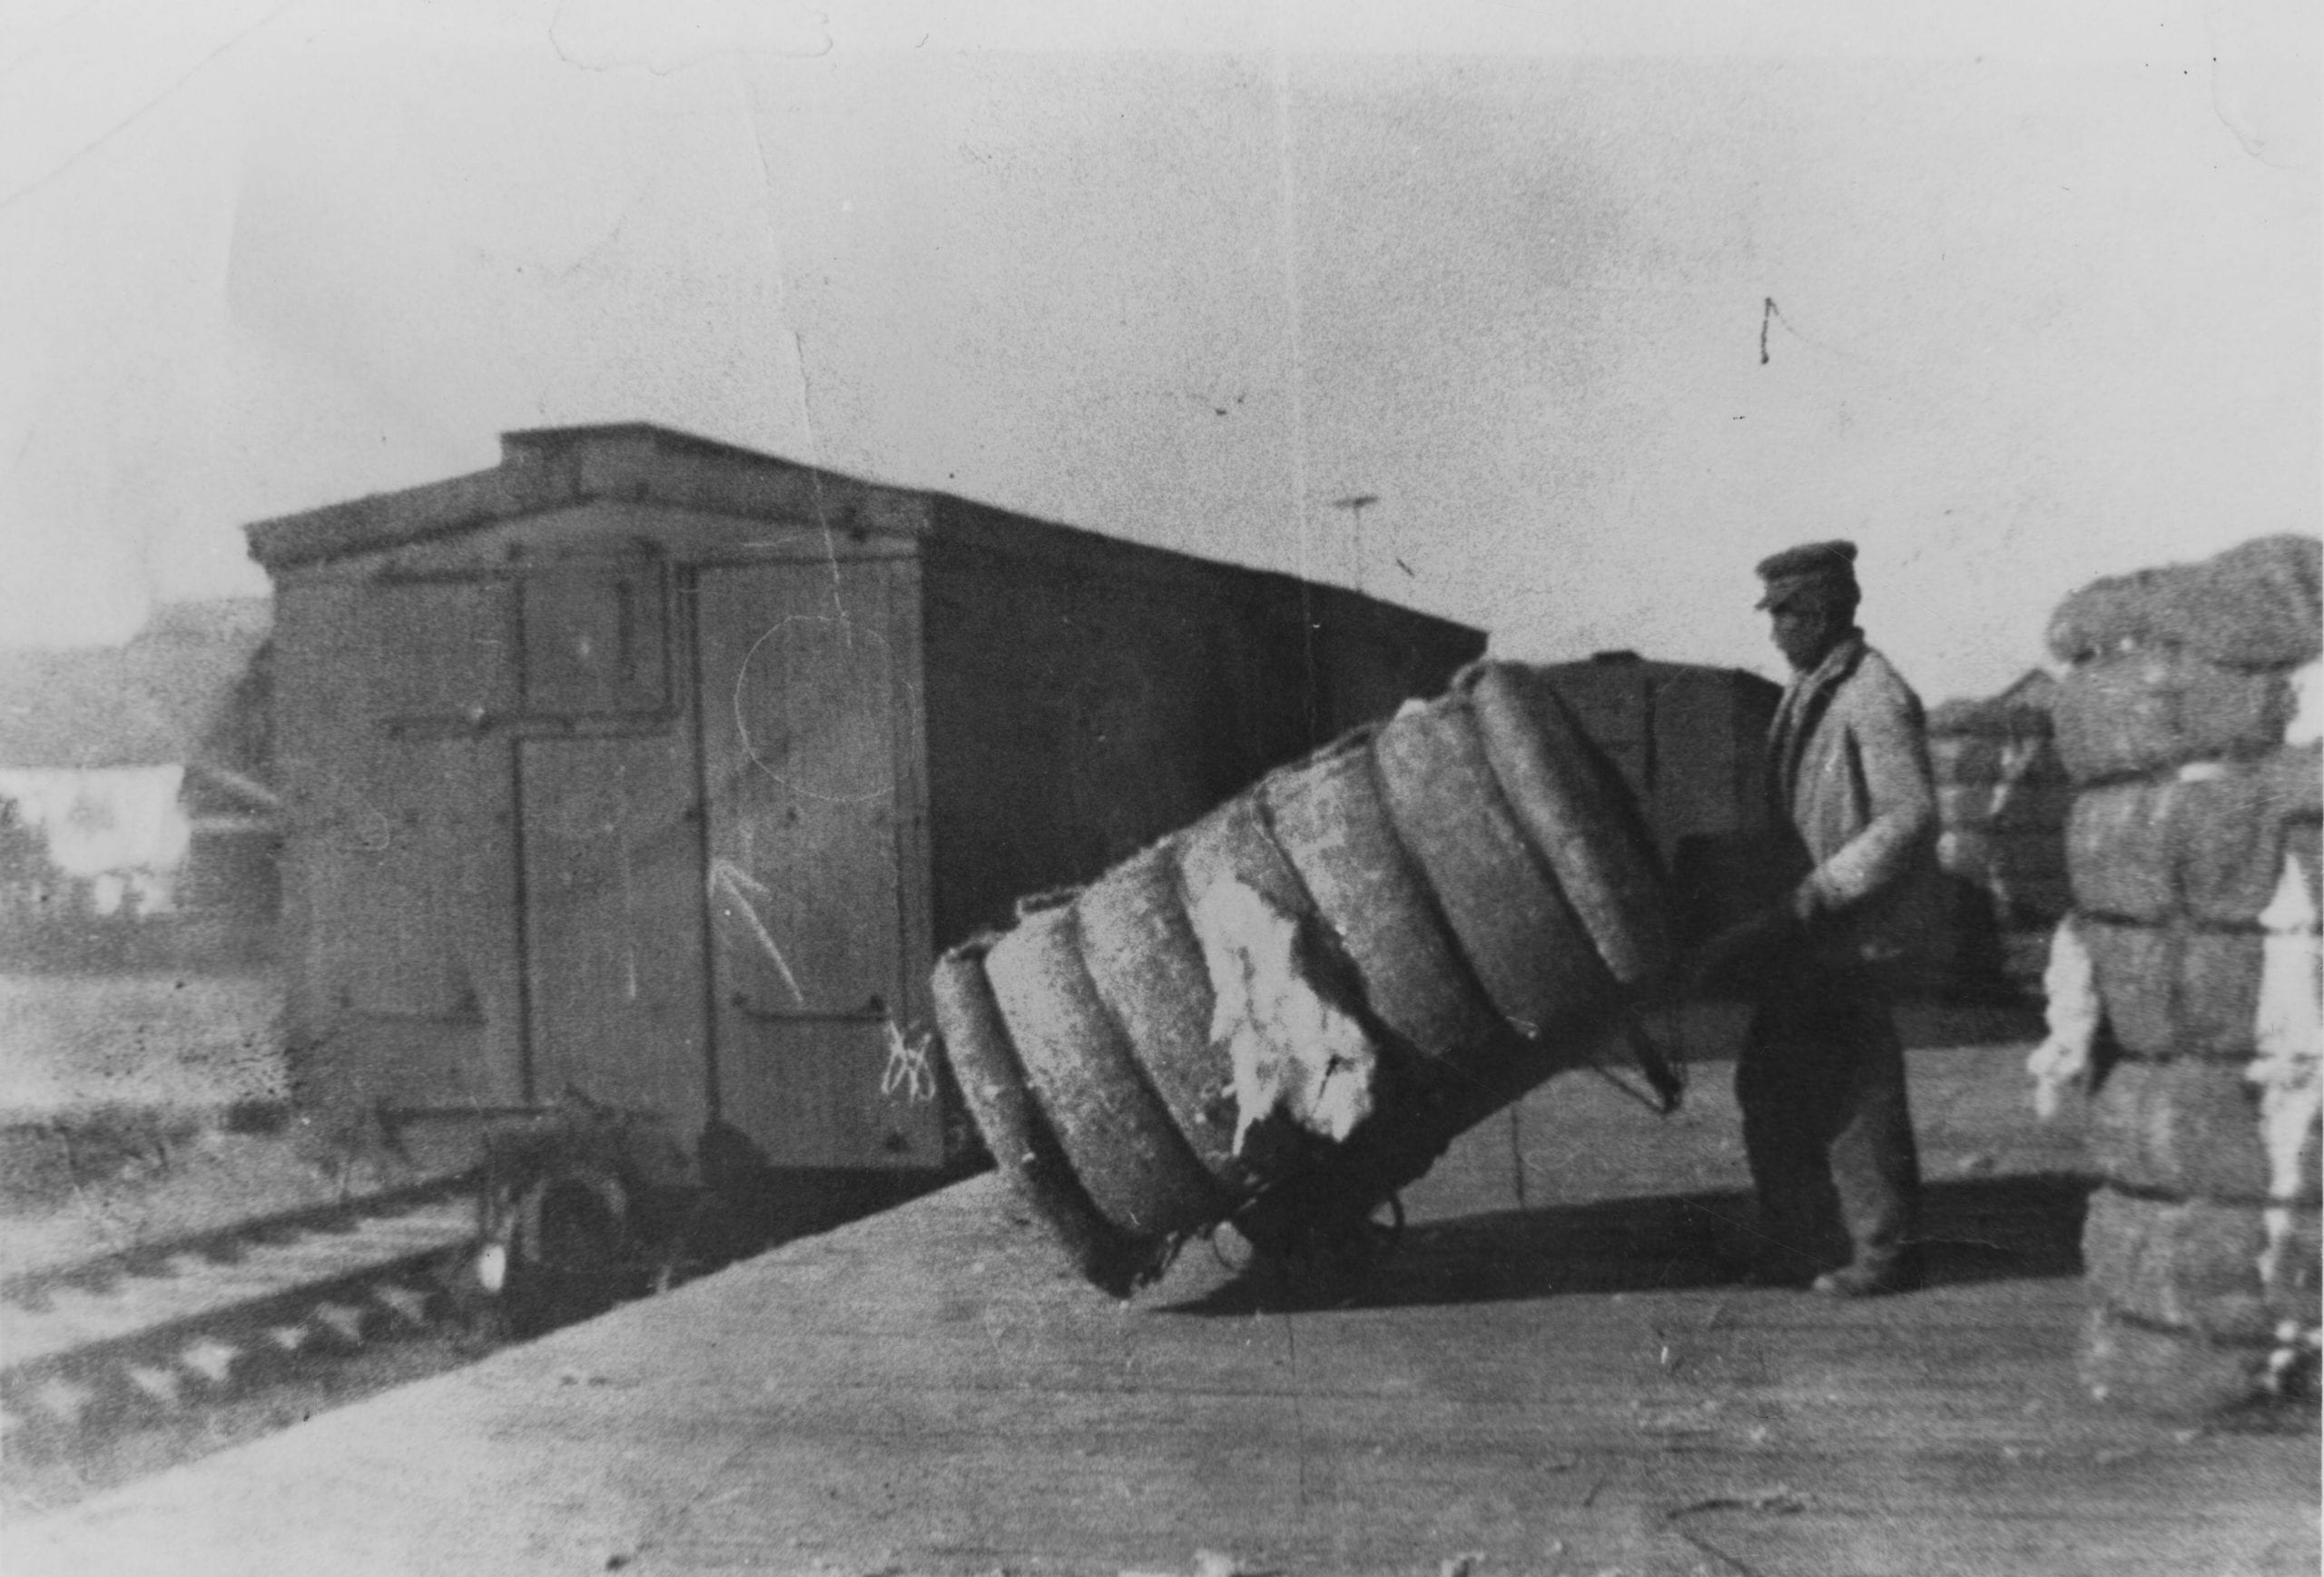 1910's – Loading cotton at railroad depot, Tupelo